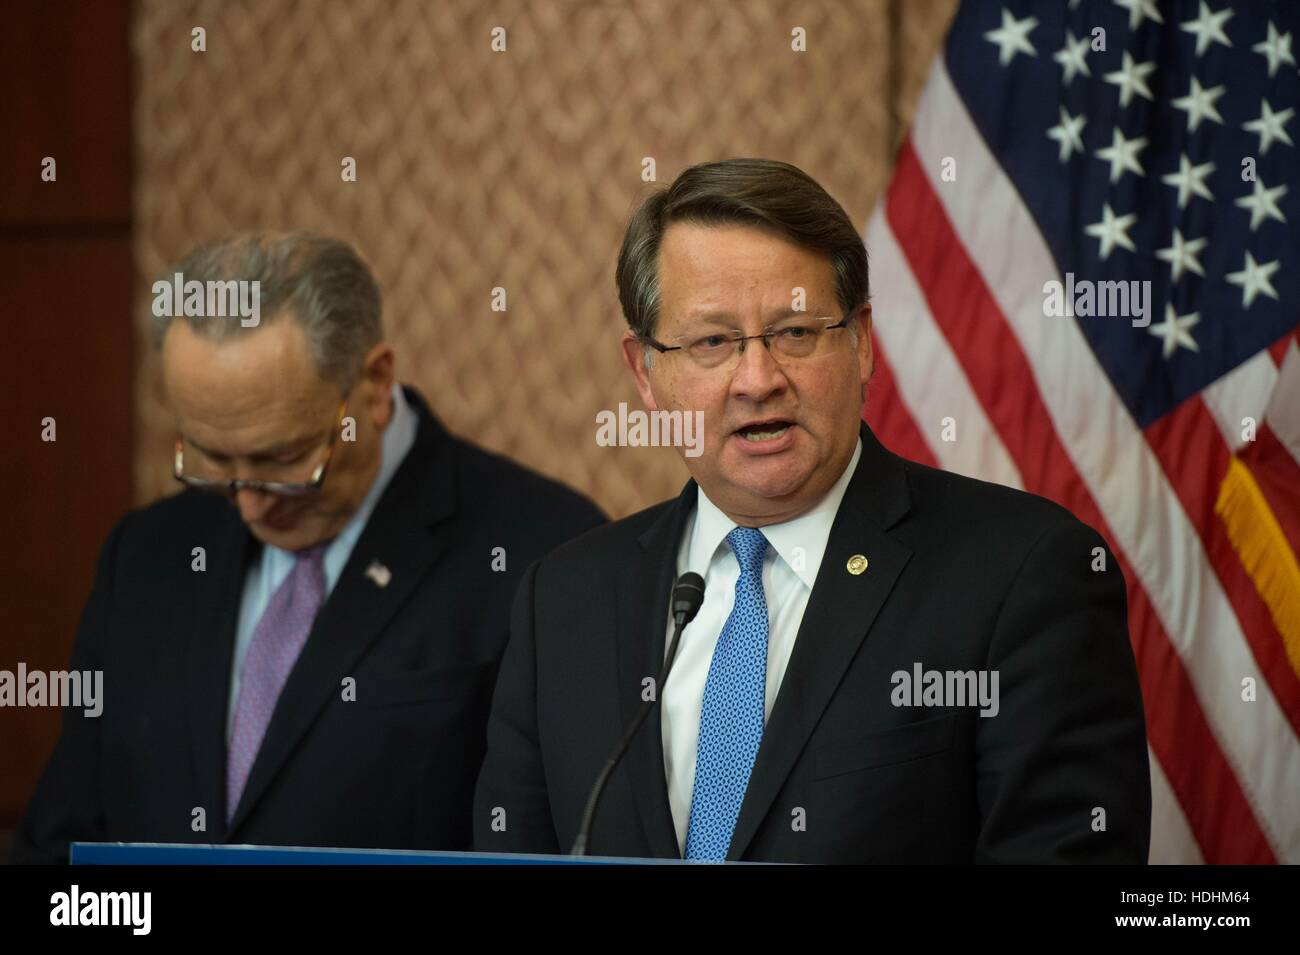 U.S Senator Gary Peters of Michigan joins fellow Democrats calling to stop outsourcing of jobs during a press conference - Stock Image